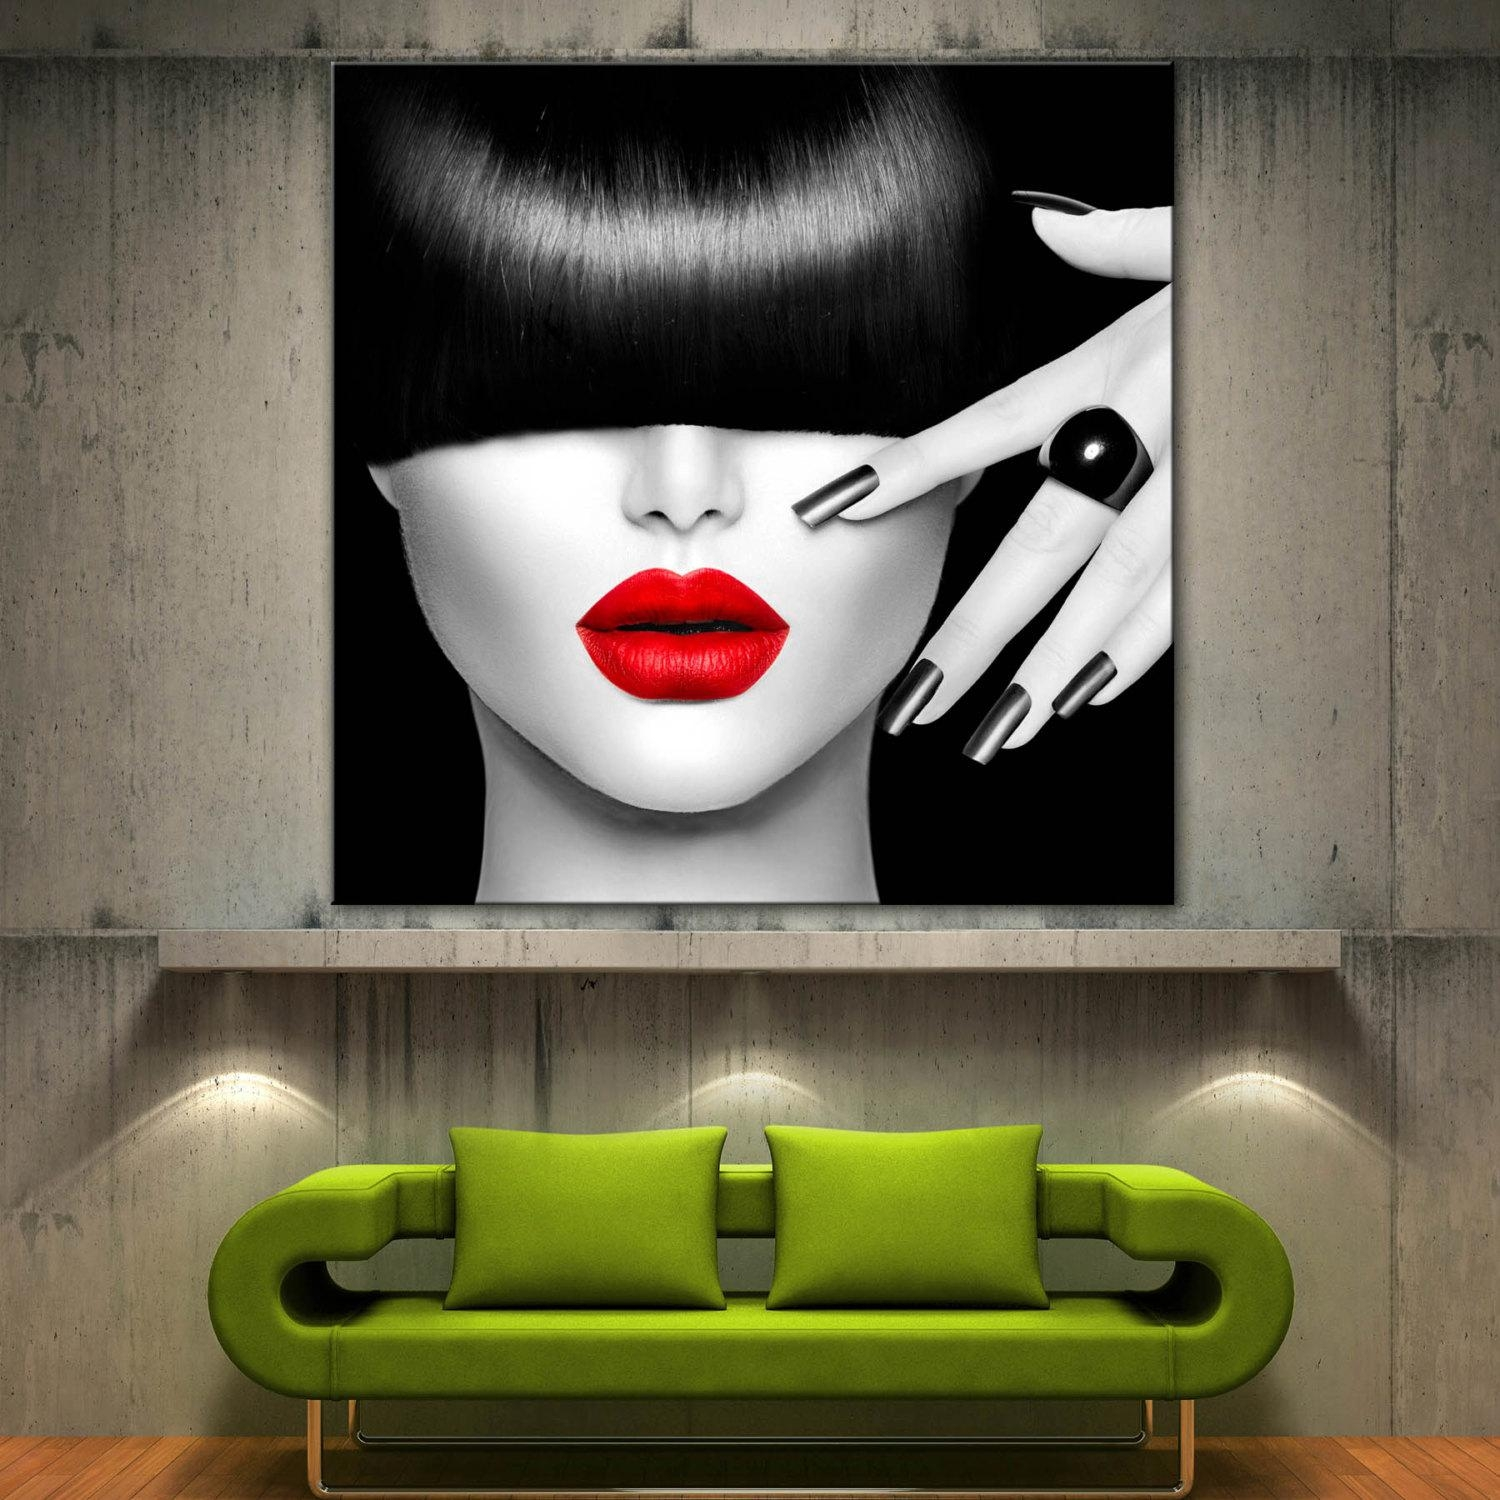 Red Lips Face Modern Home Decor Fine Wall Art Black White within Black and White Wall Art With Red